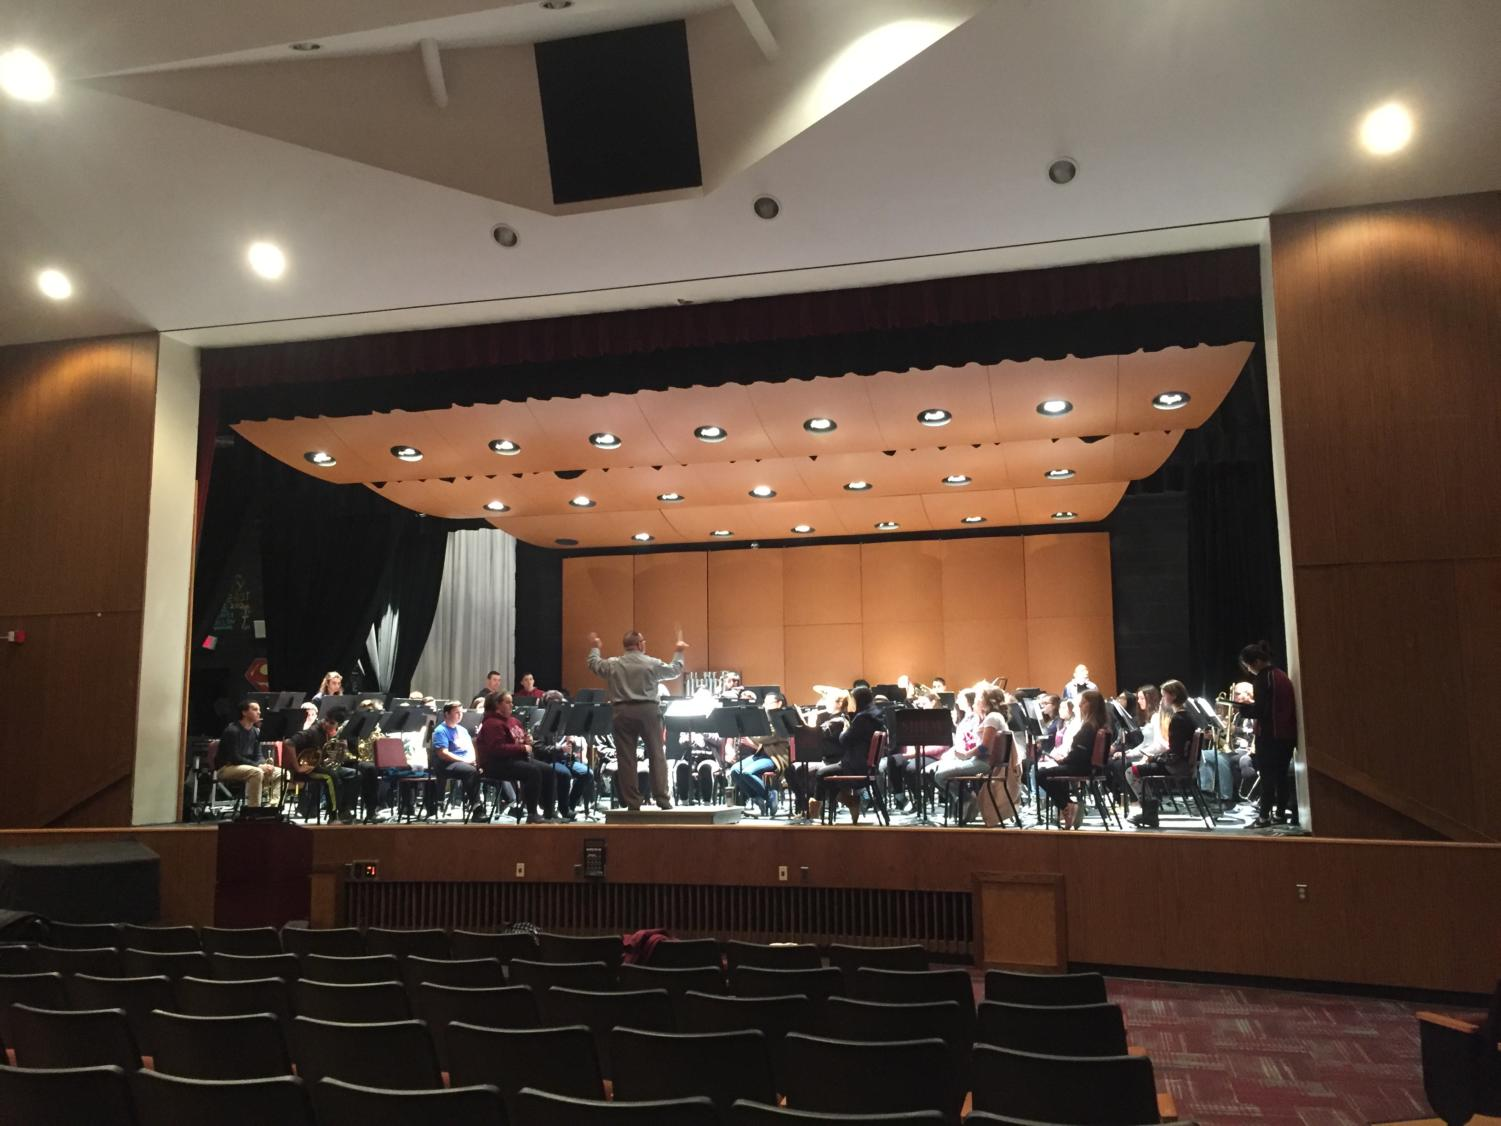 Band practicing before concert in auditorium